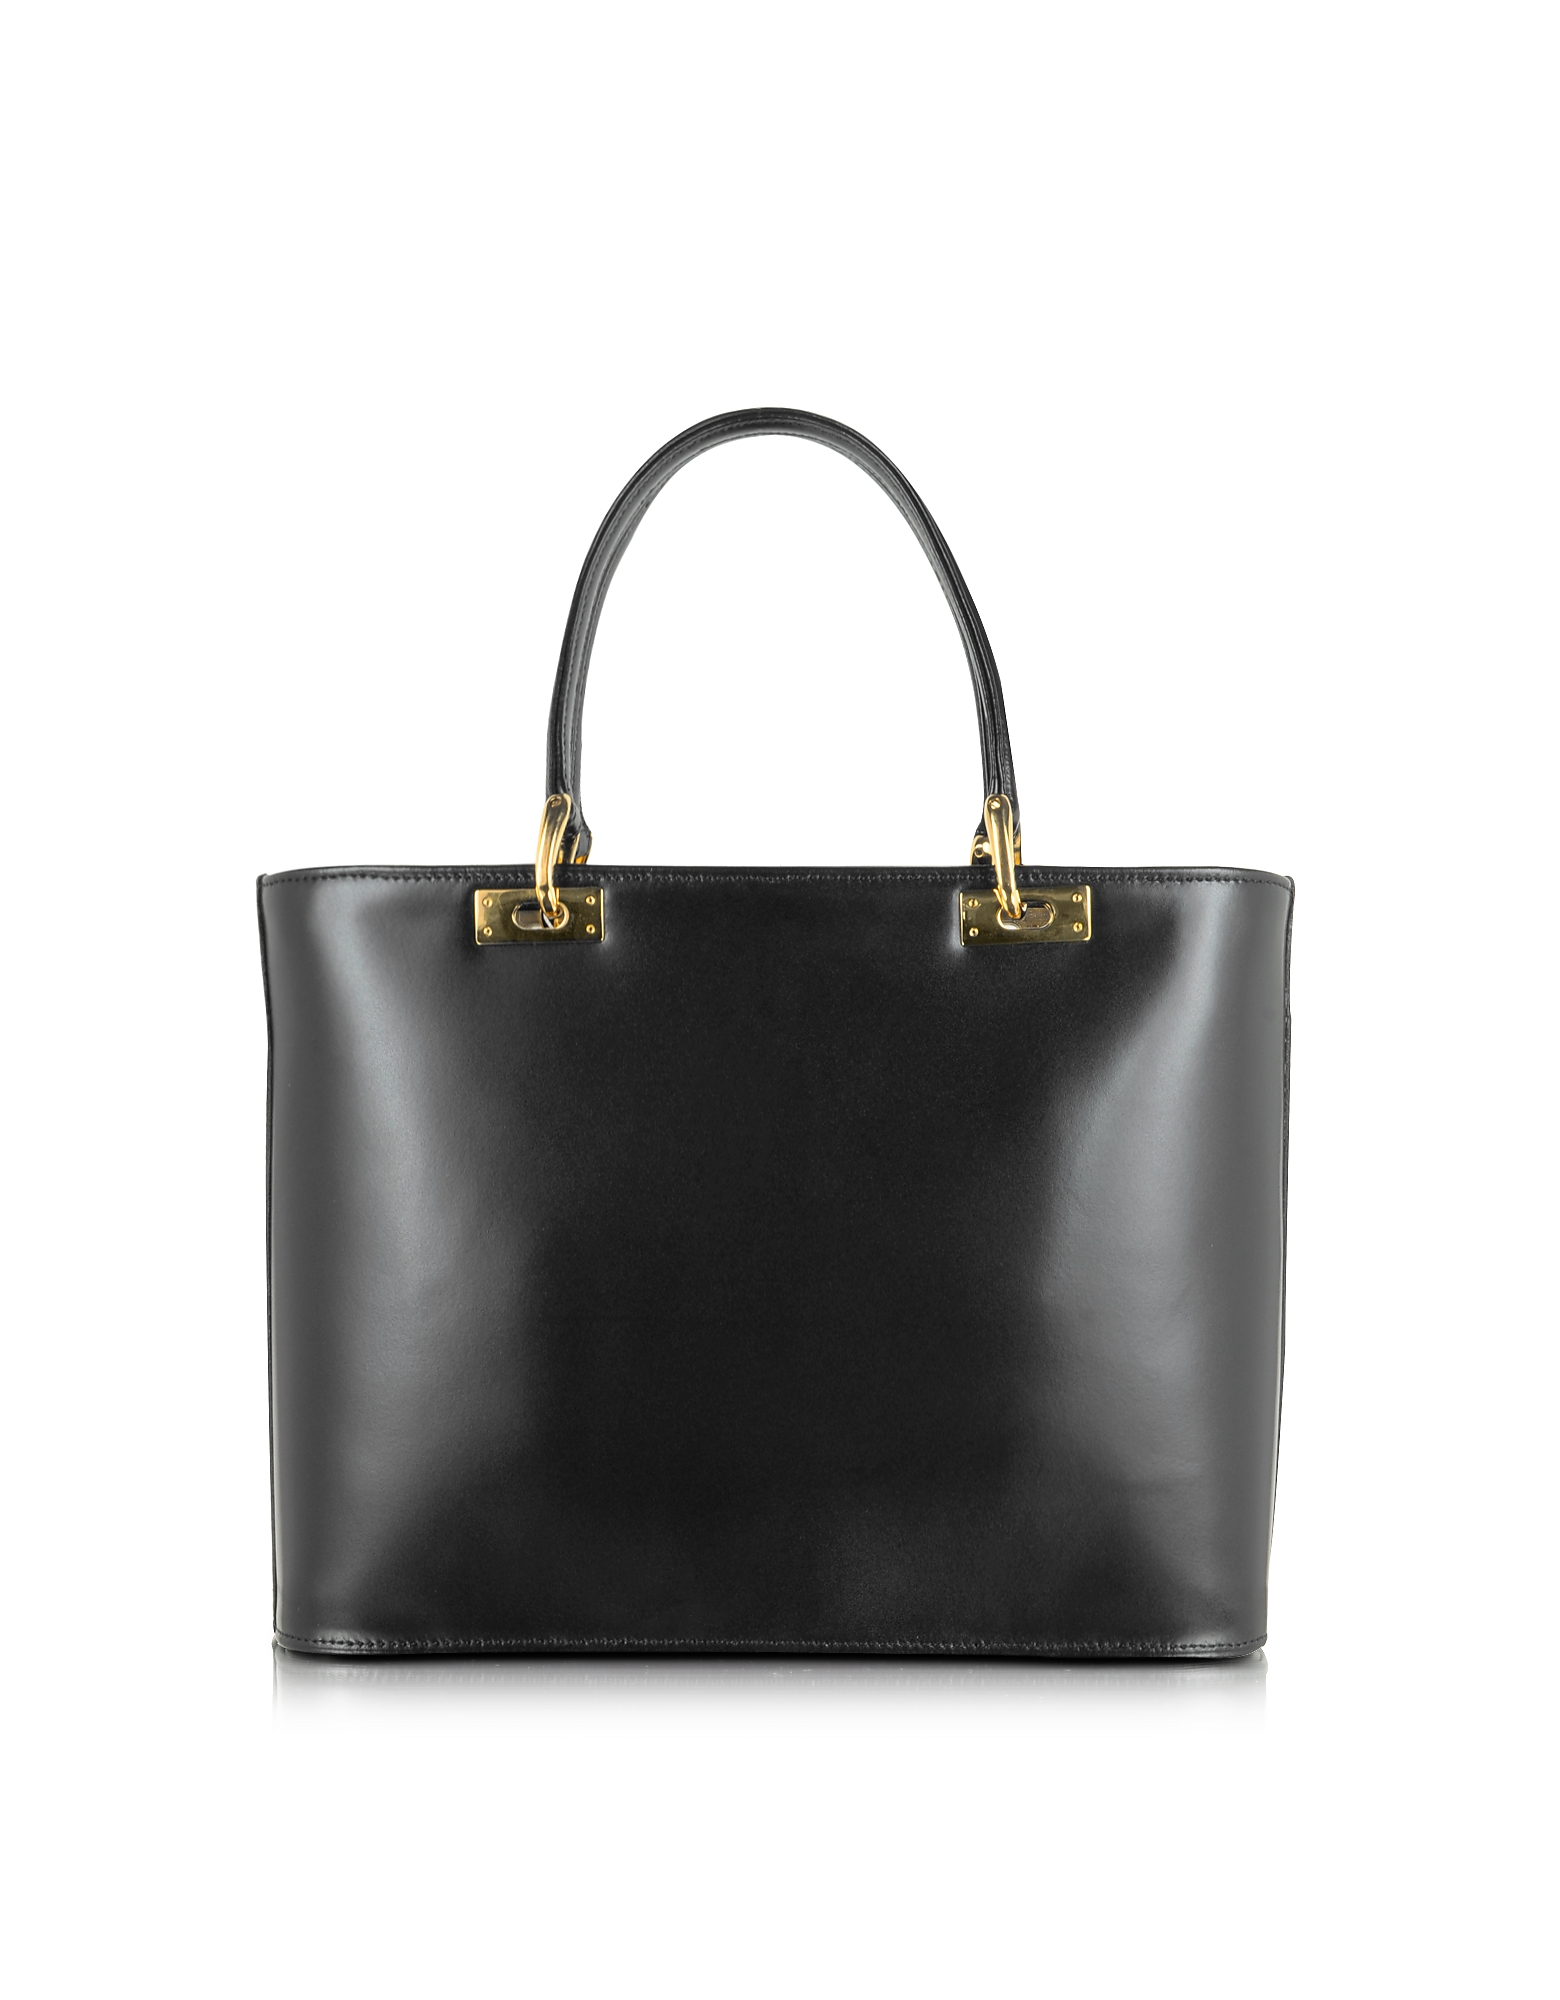 Fontanelli Handbags, Polished Black Leather Tote Handbag